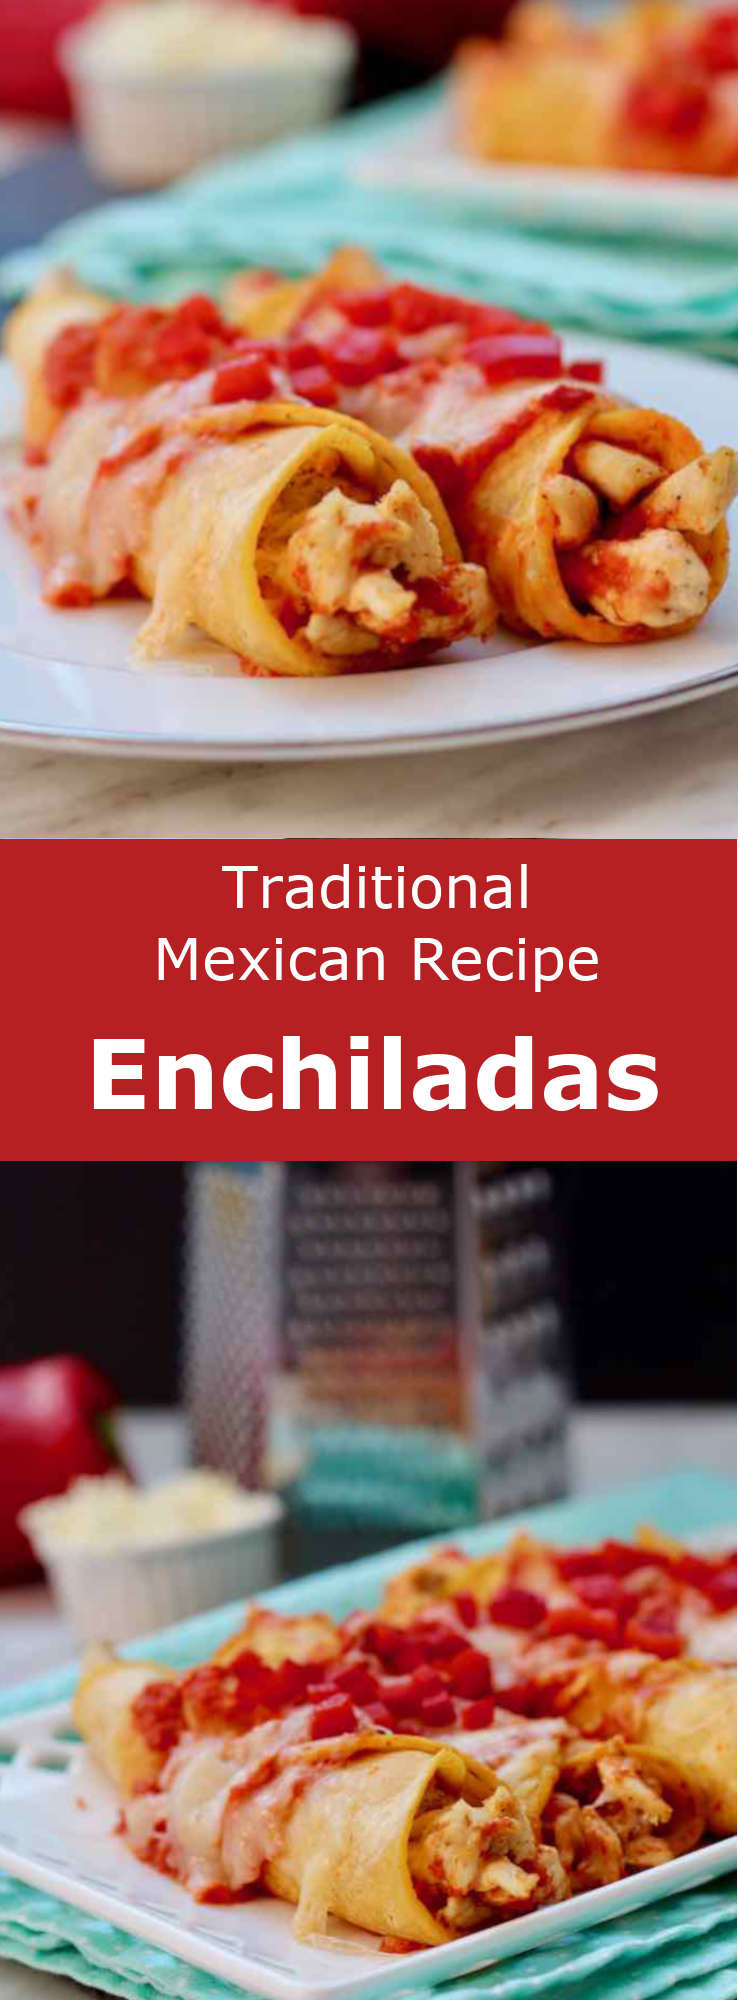 Enchiladas are rolled corn tortillas that are stuffed with meat, cheese, beans or potatoes before being covered with a chili pepper sauce. #Mexican #MexicanFood #MexicanCuisine #MexicanRecipe #WorldCuisine #196flavors